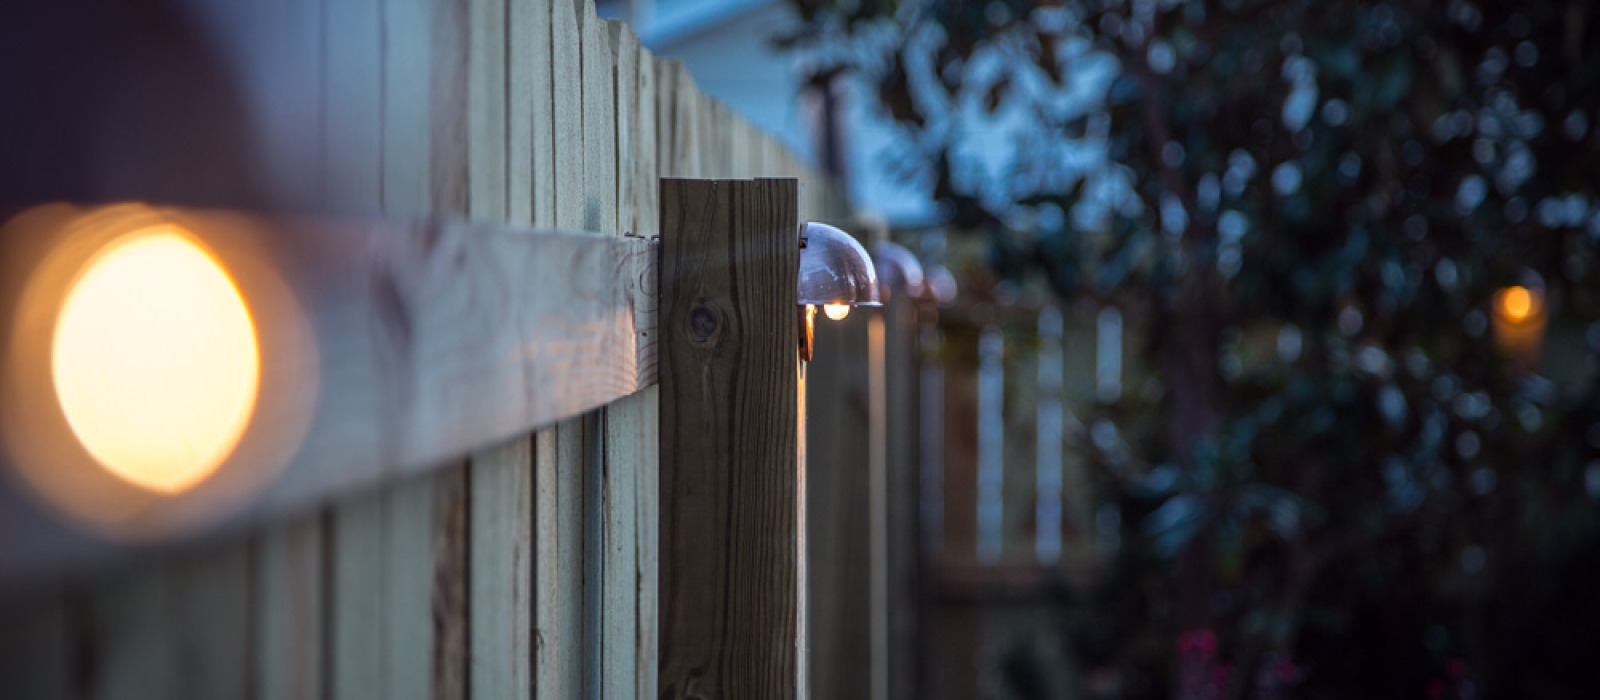 Marvellous Accent Lighting Diy Wood Privacy Fence Diy Wood Privacy Fence Accent Lighting Hammer Moxie Do It Yourself Backyard Fence outdoor Do It Yourself Backyard Fence